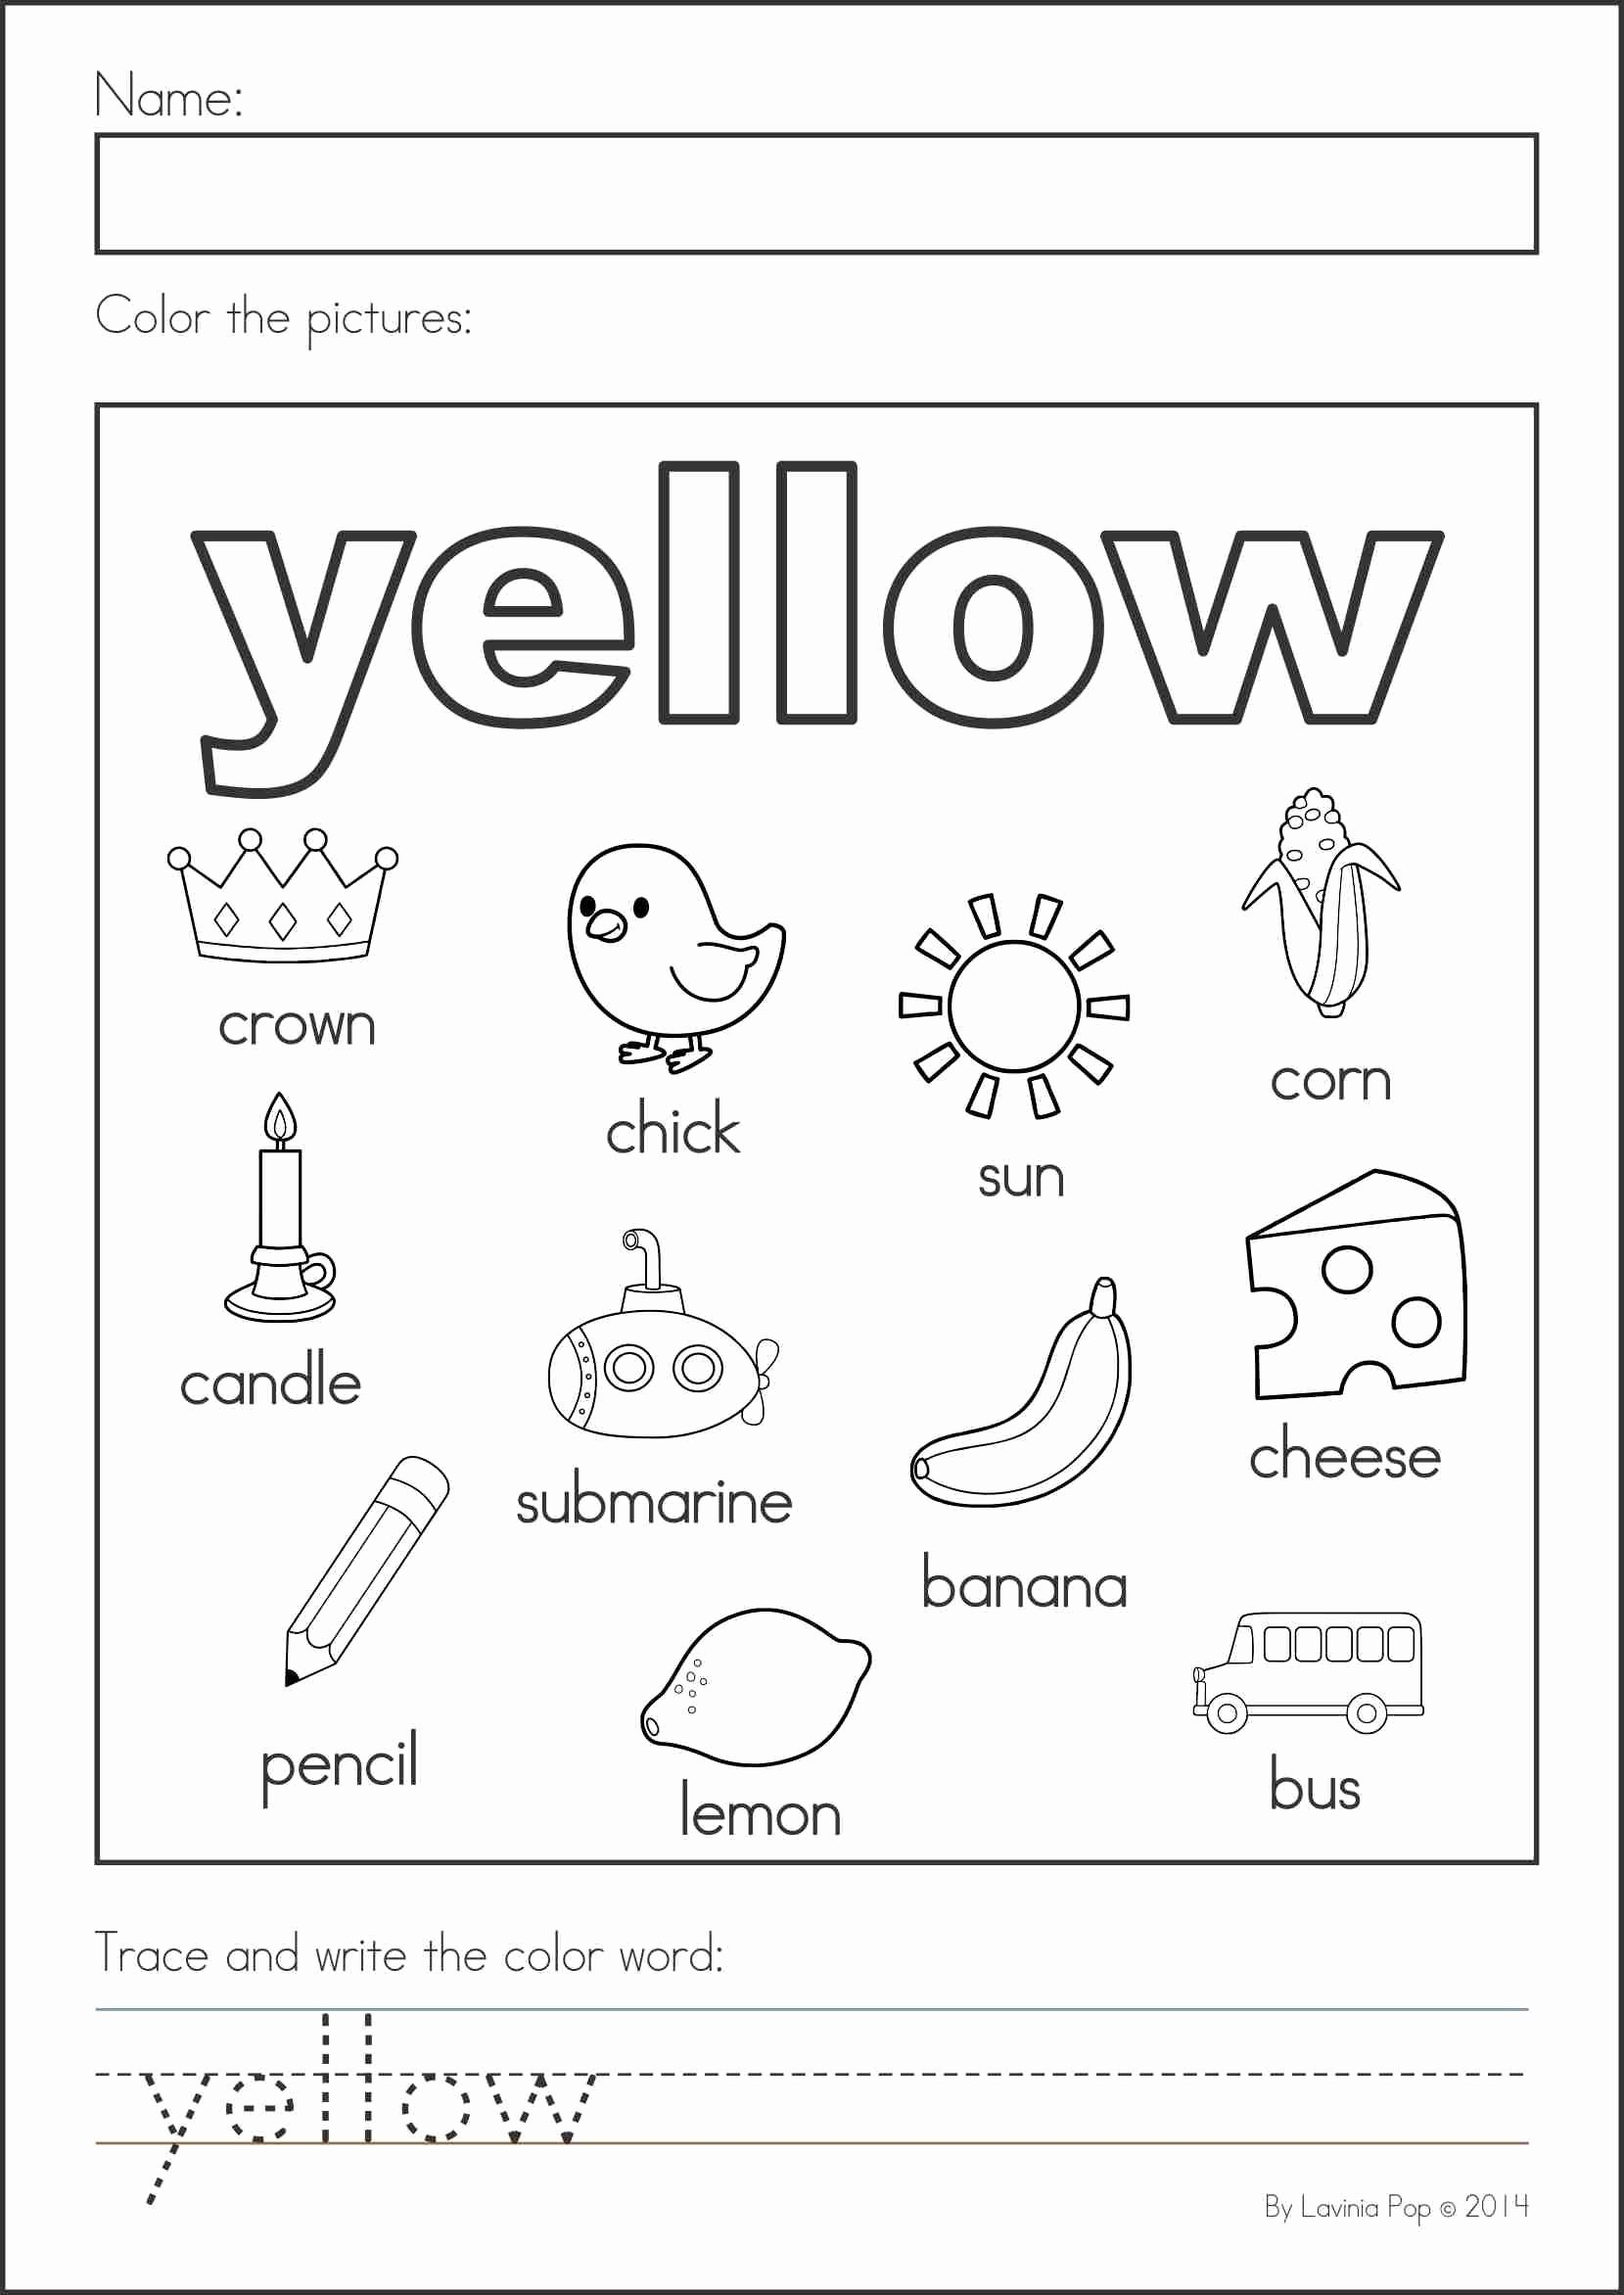 Color Yellow Worksheets for Preschoolers Lovely Back to School Math & Literacy Worksheets and Activities No